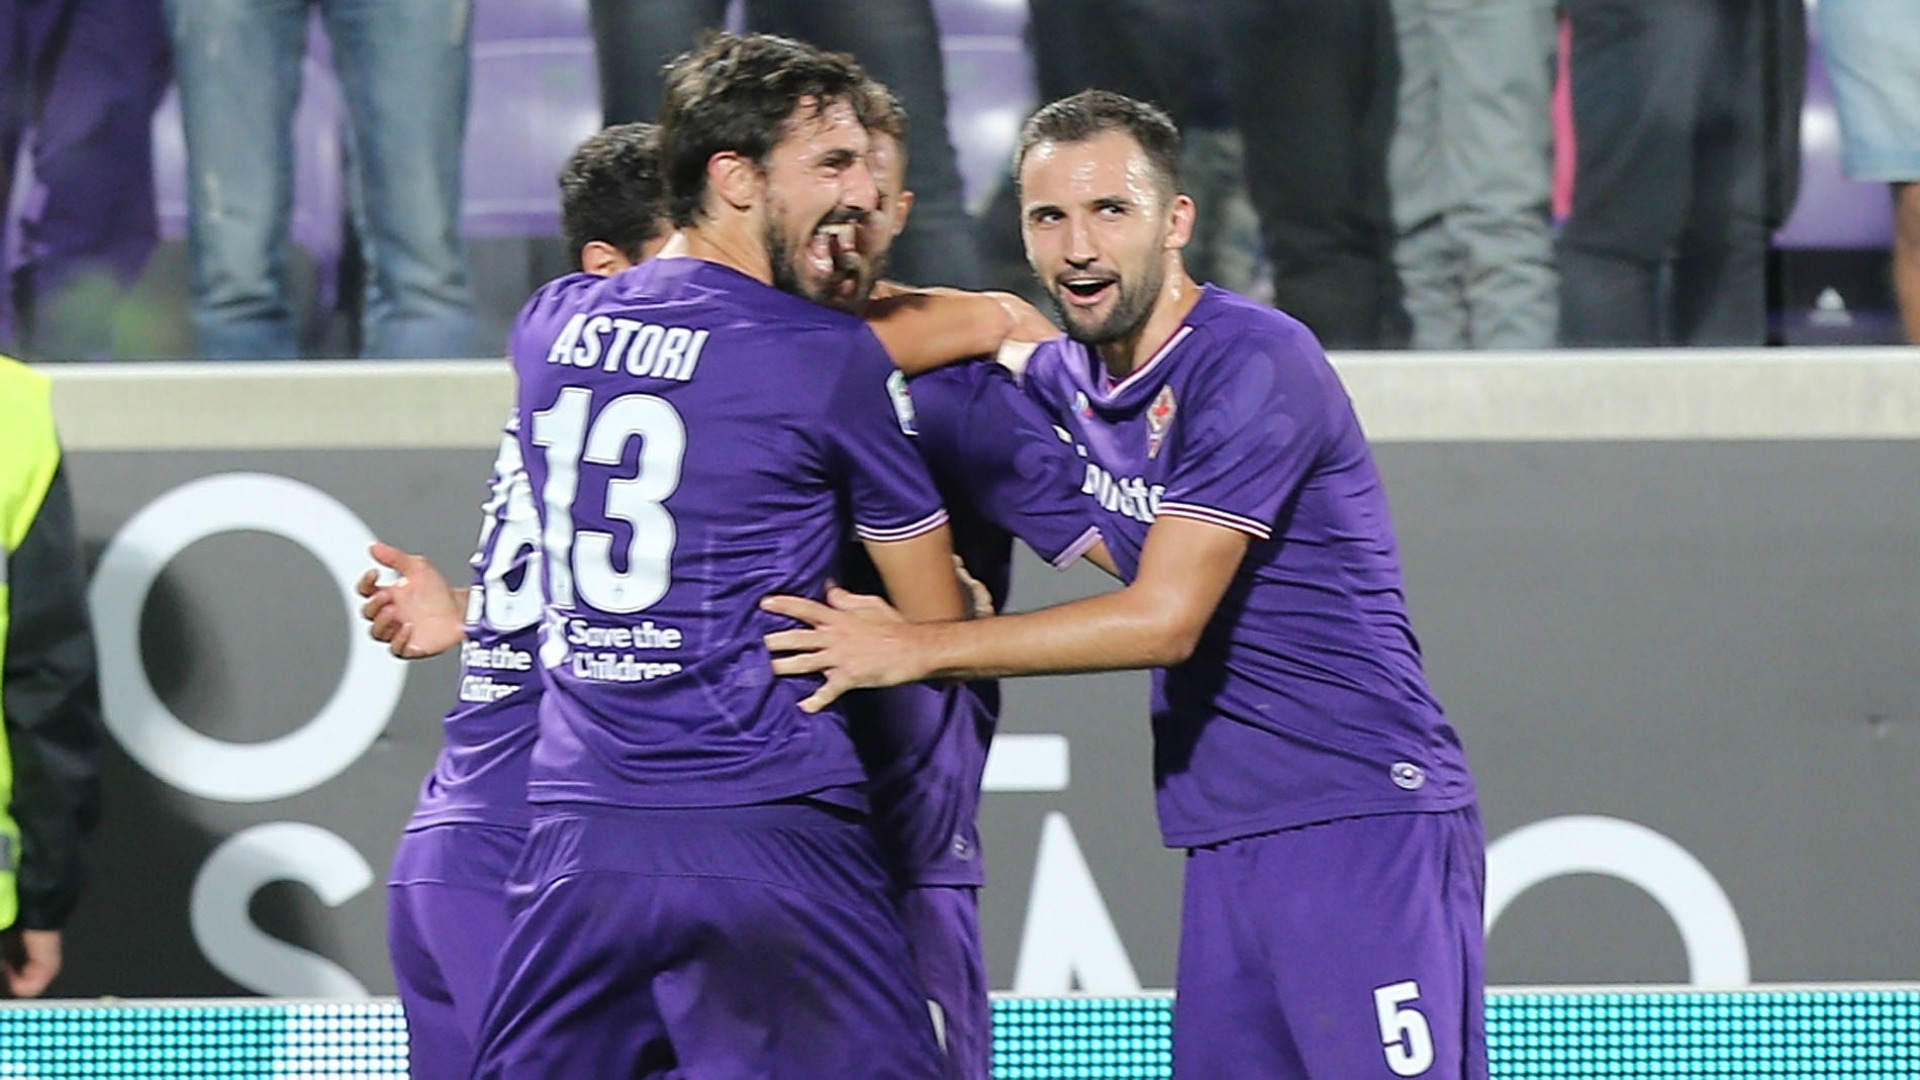 Fiorentina celebrating Bologna